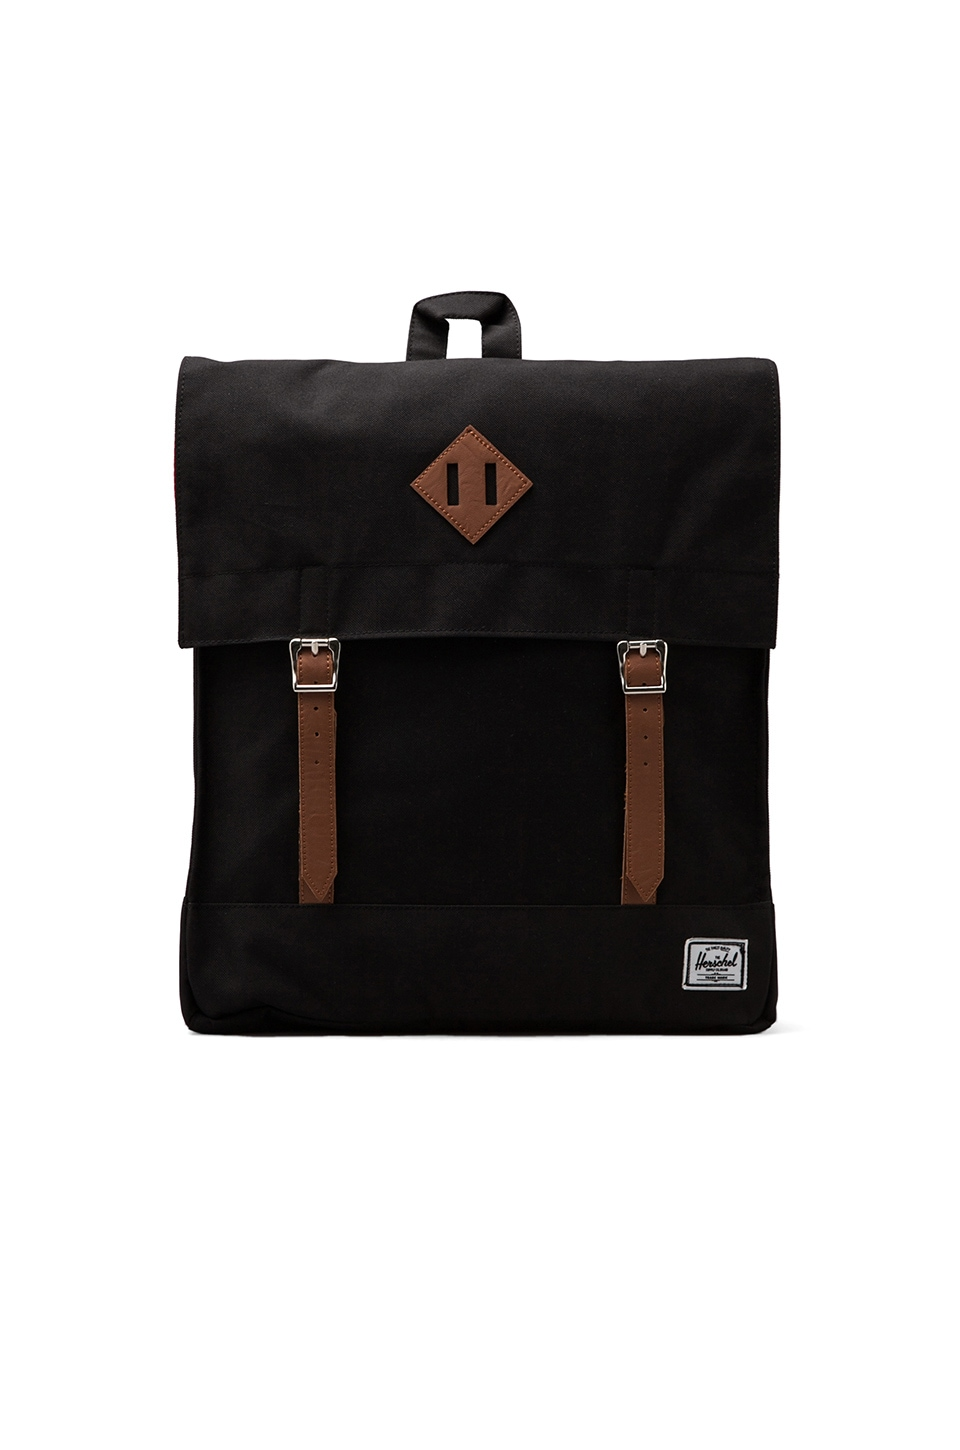 Herschel Supply Co. Survey Backpack in Black